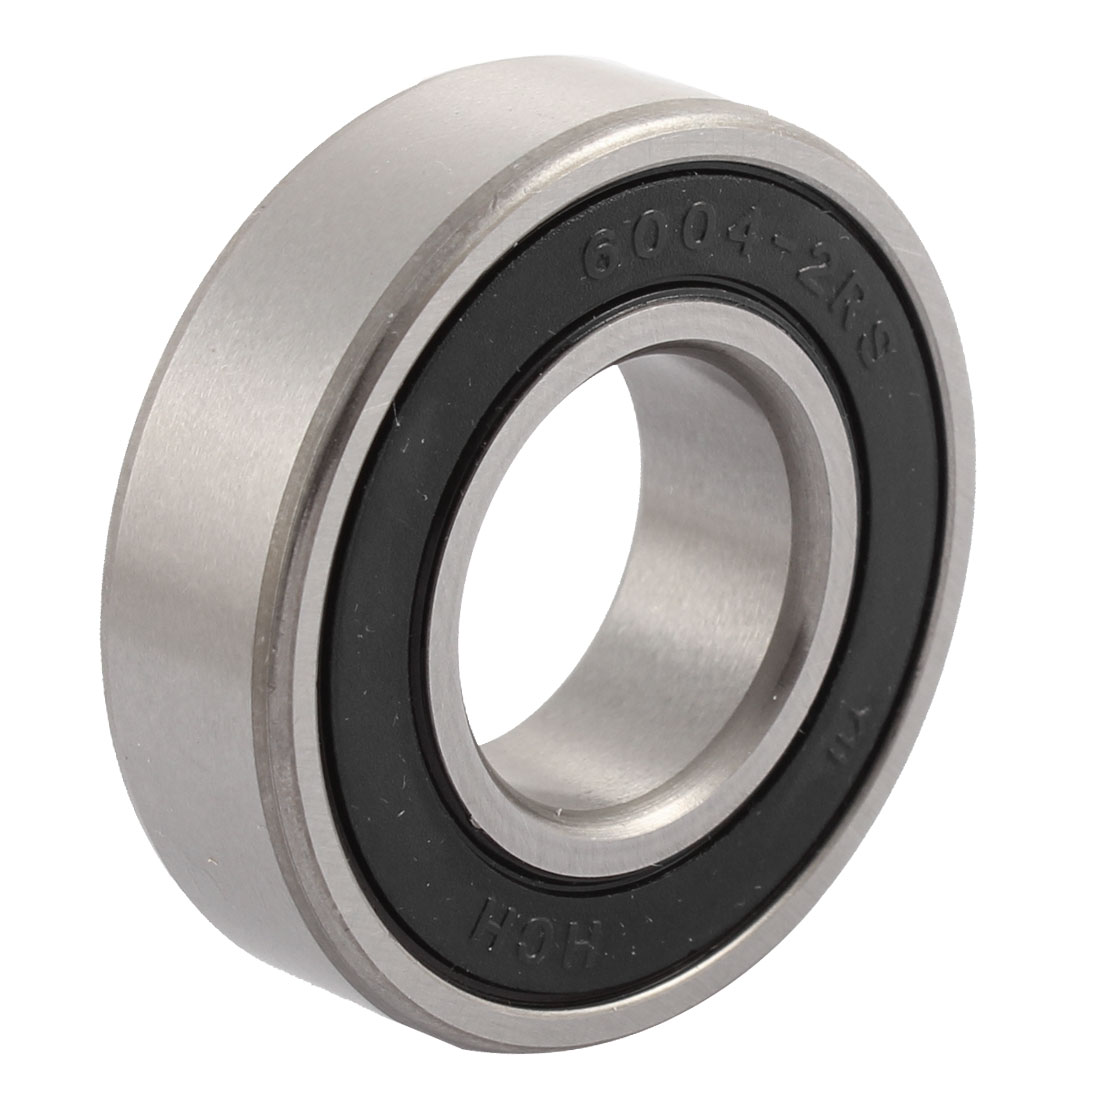 6004-2RS 20mm Inner Dia Deep Groove Radial Ball Bearing Silver Tone Black